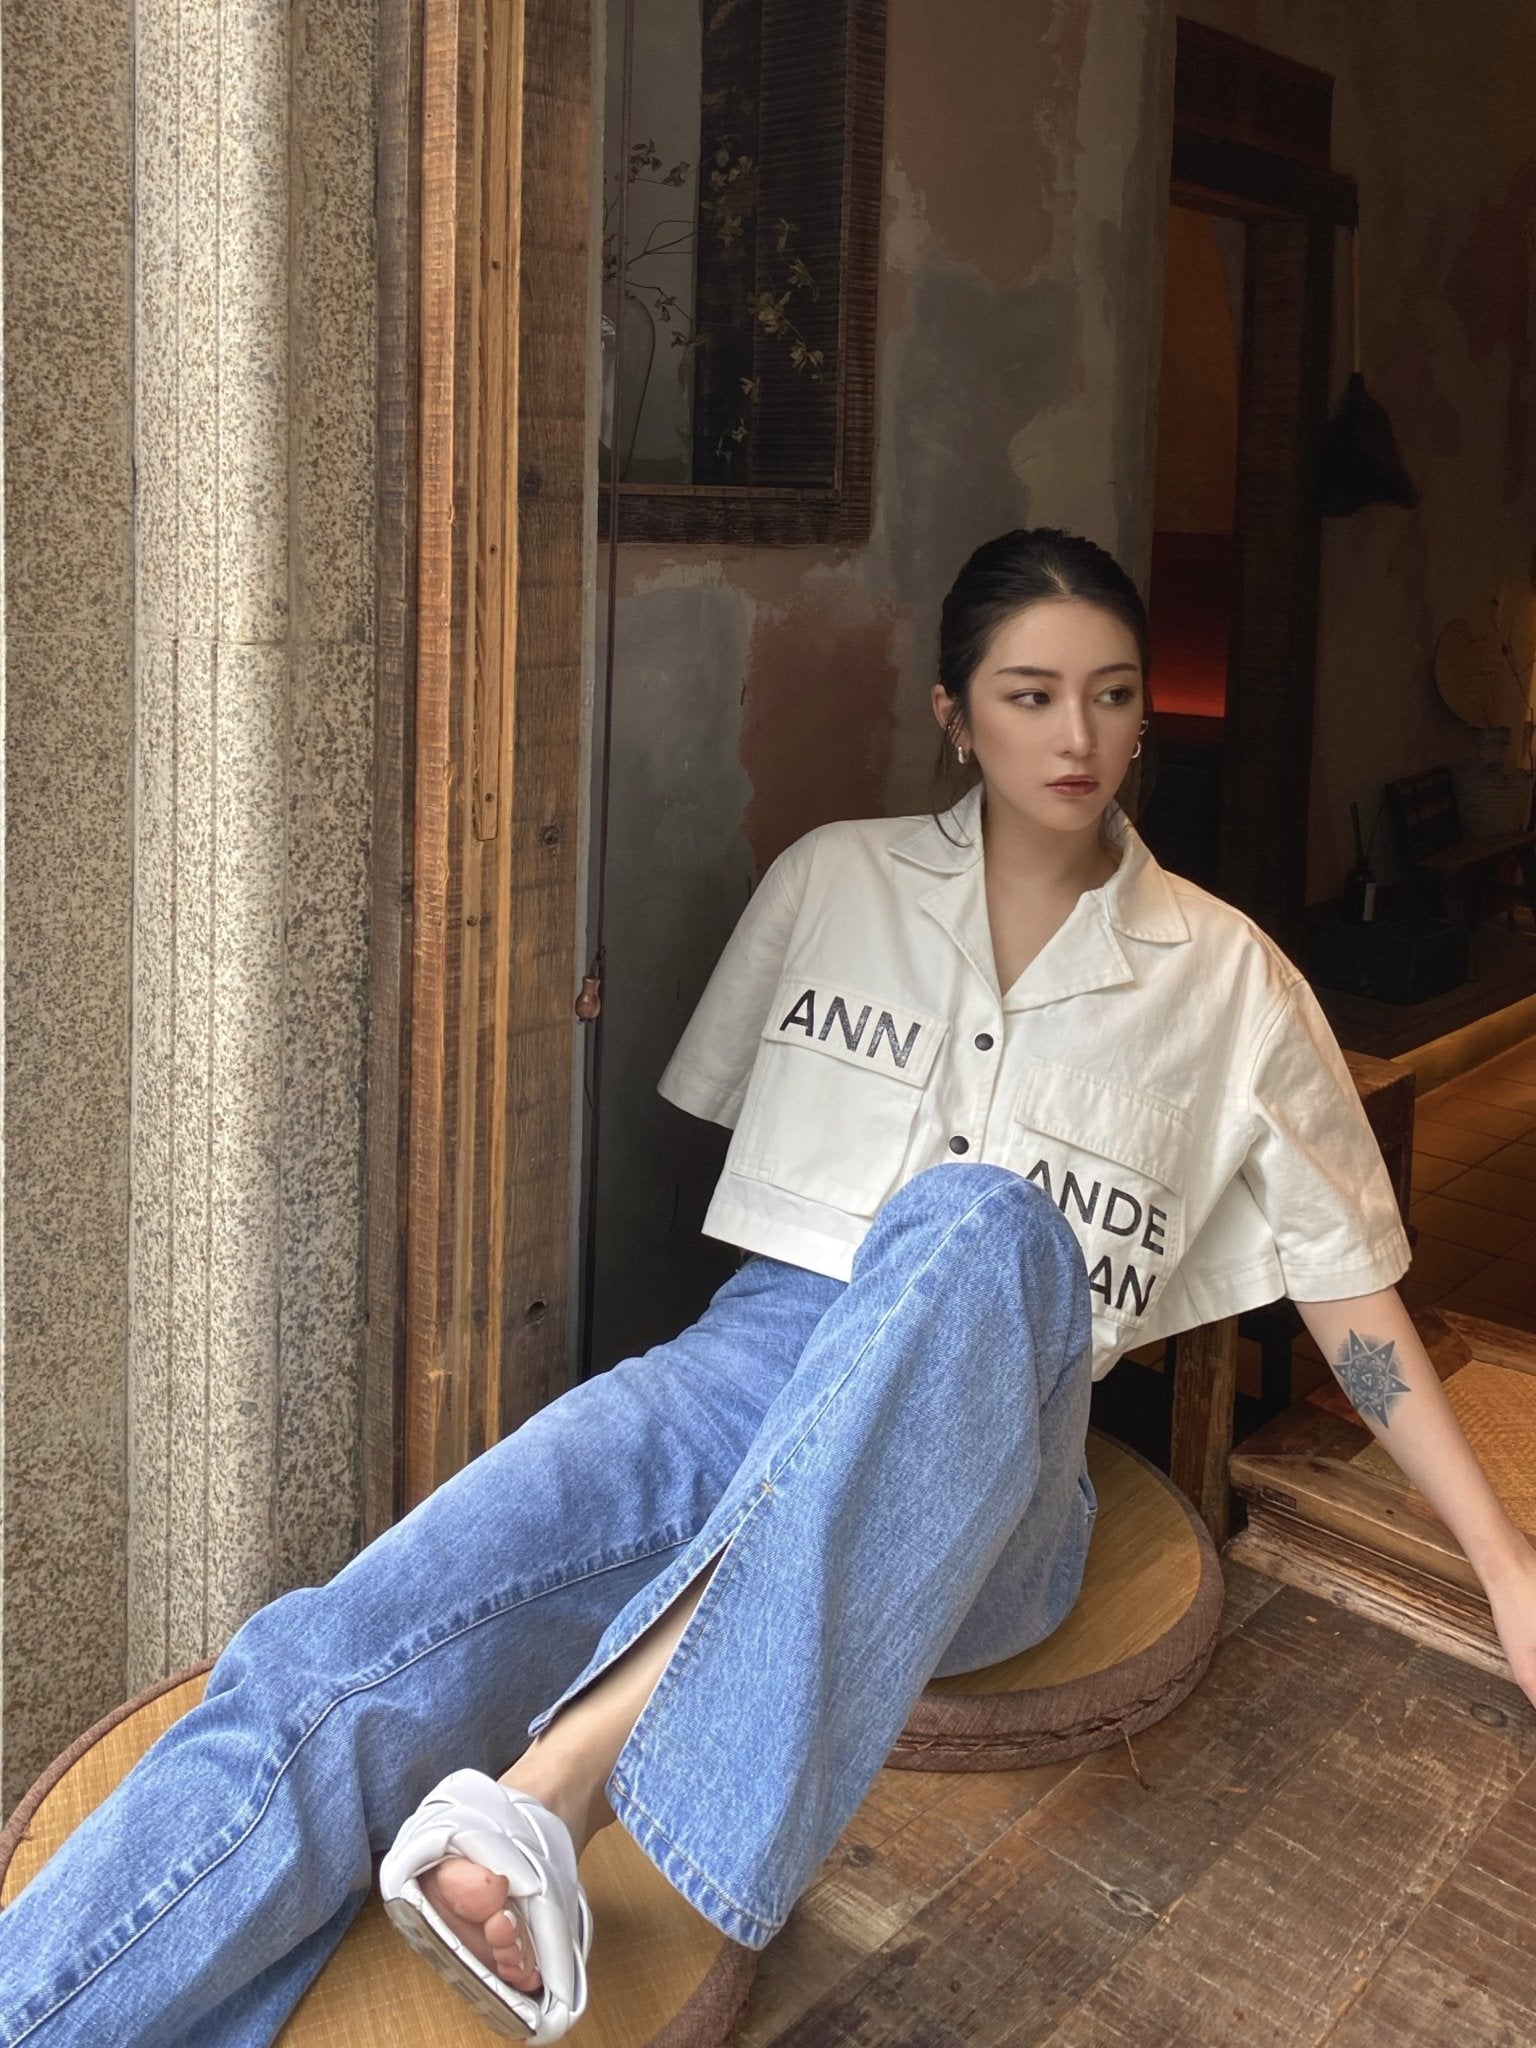 ANN ANDELMAN White Cropped Shirt | MADA IN CHINA